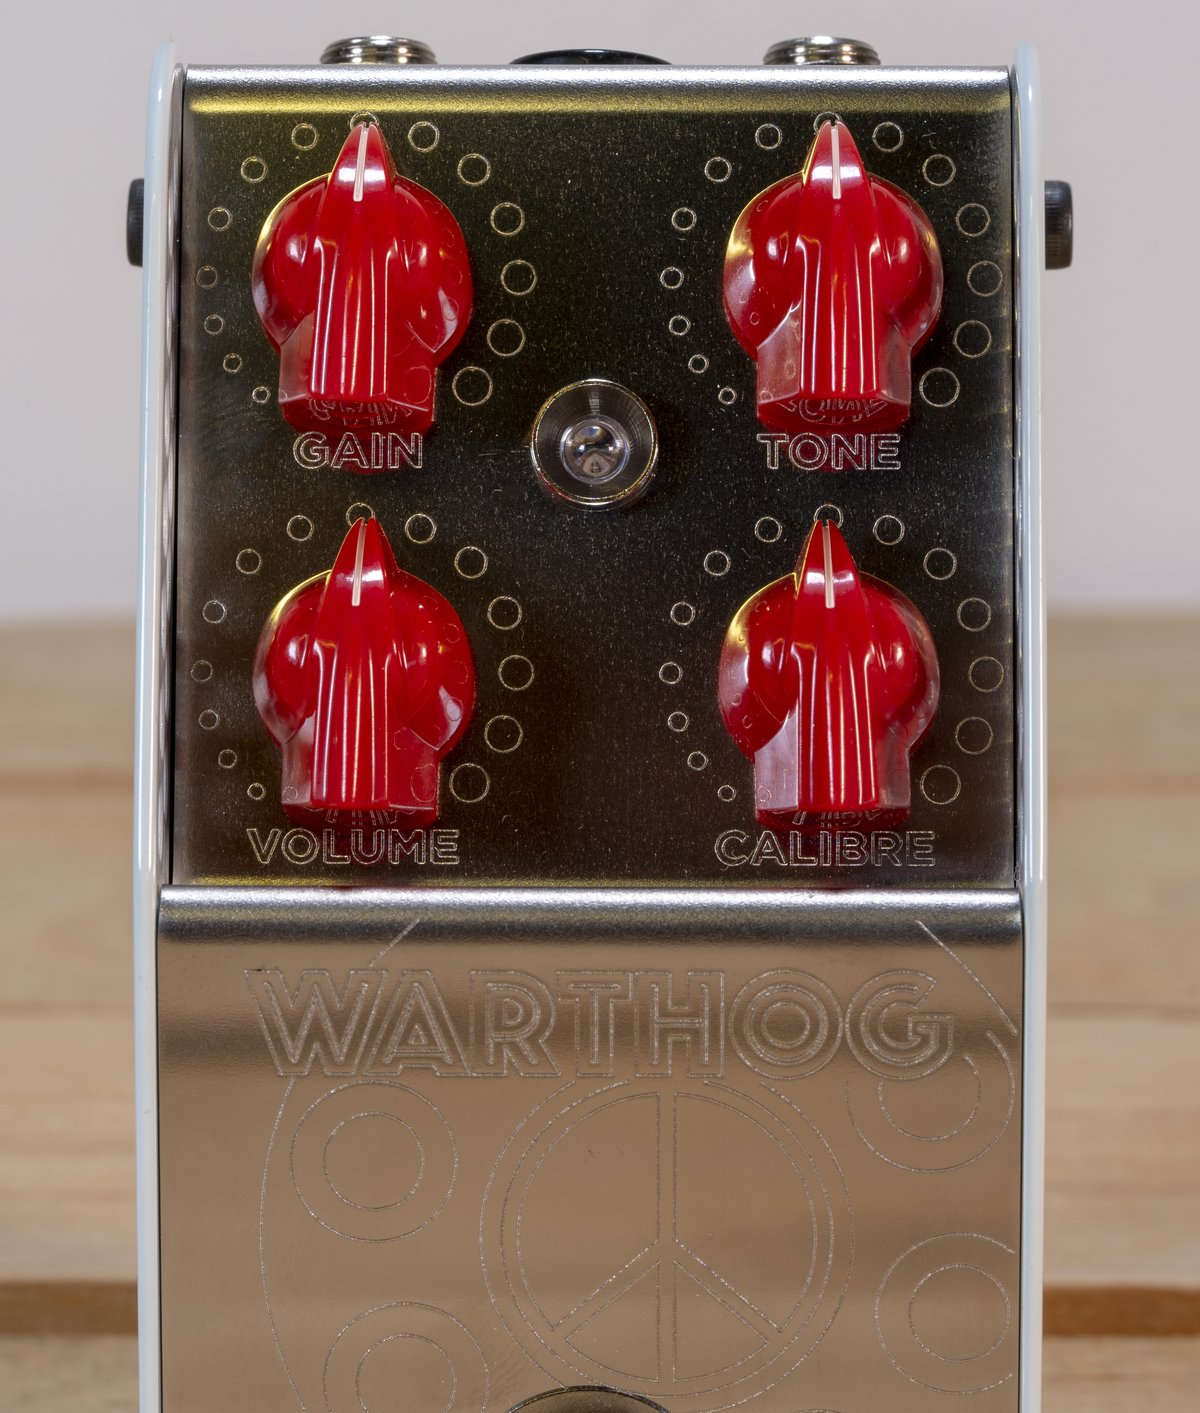 Thorpy FX The Warthog Distortion Guitar Pedal